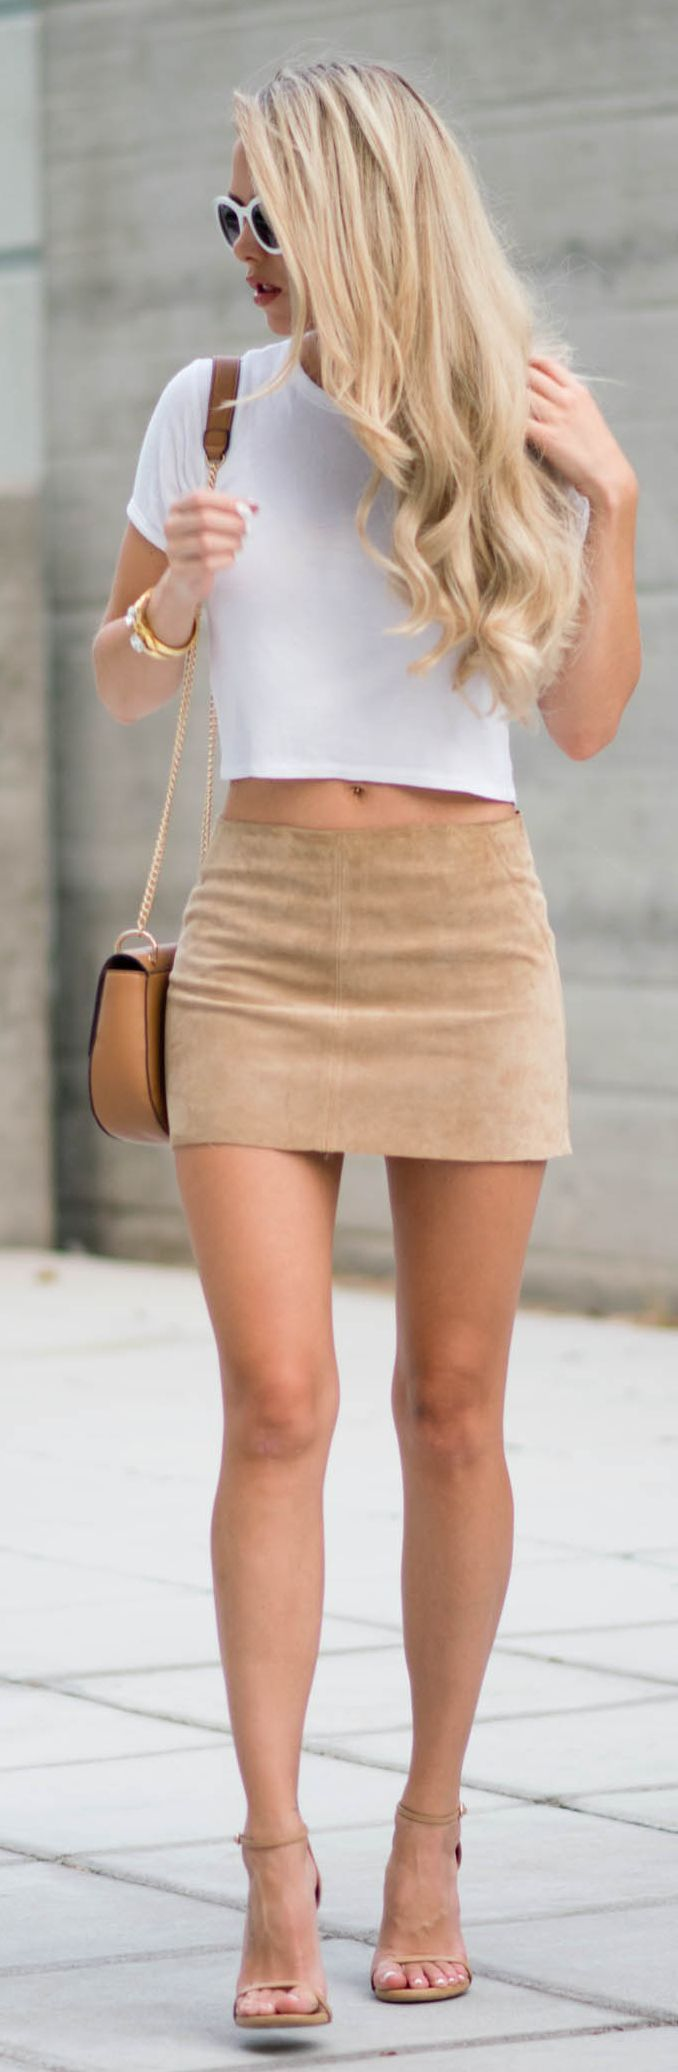 Suede Low Rise Skirt, white top, shoulder bag, sandals. Summer street women fashion outfit